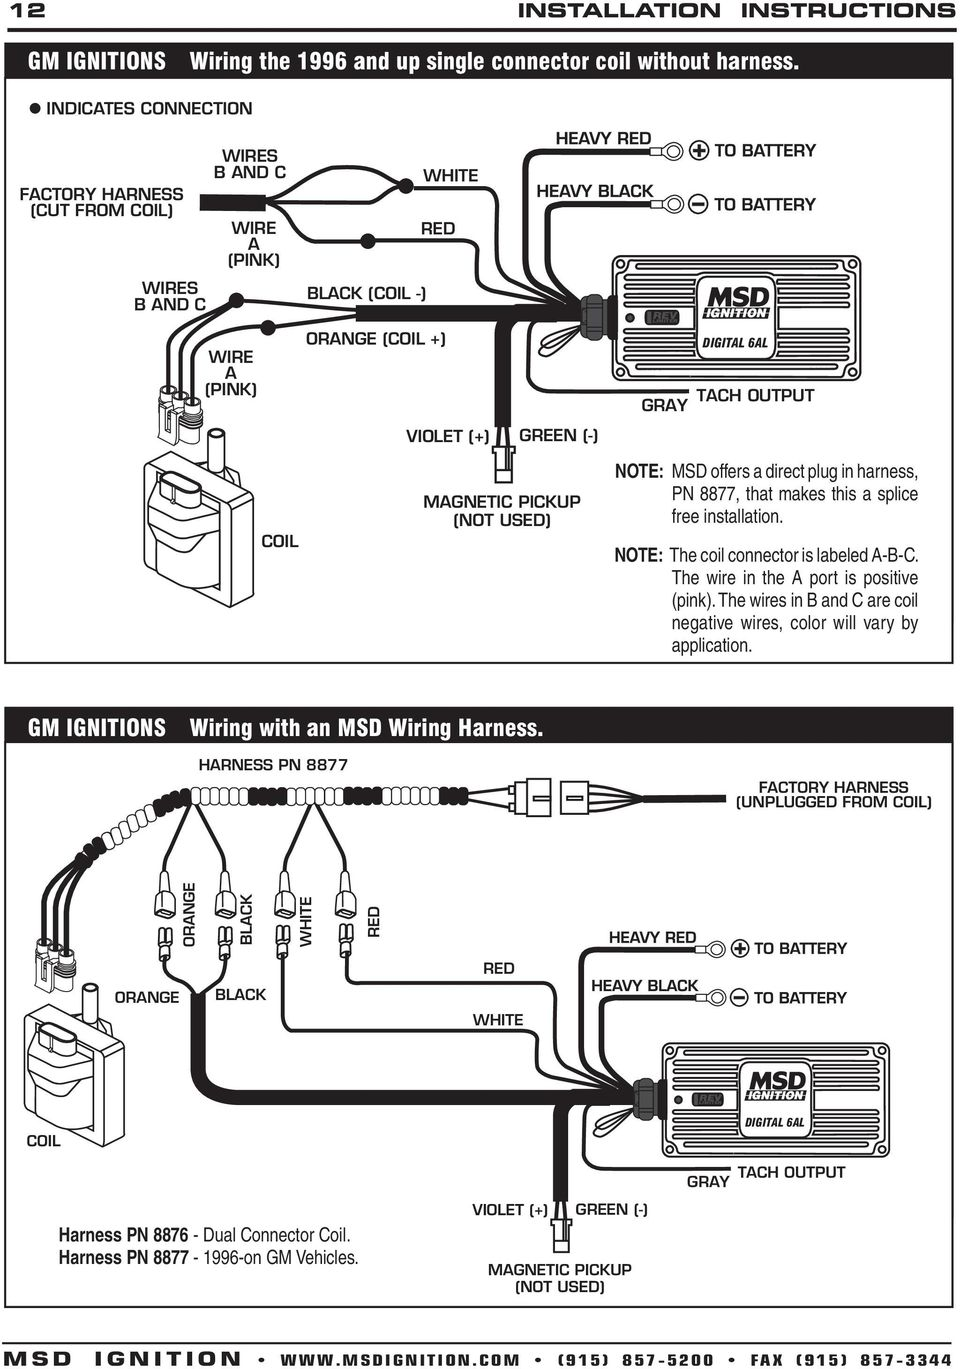 msd digital 6a and 6al ignition control 6a pn 6201 6al pn pdf harness pn 8877 that makes this a splice installation note the